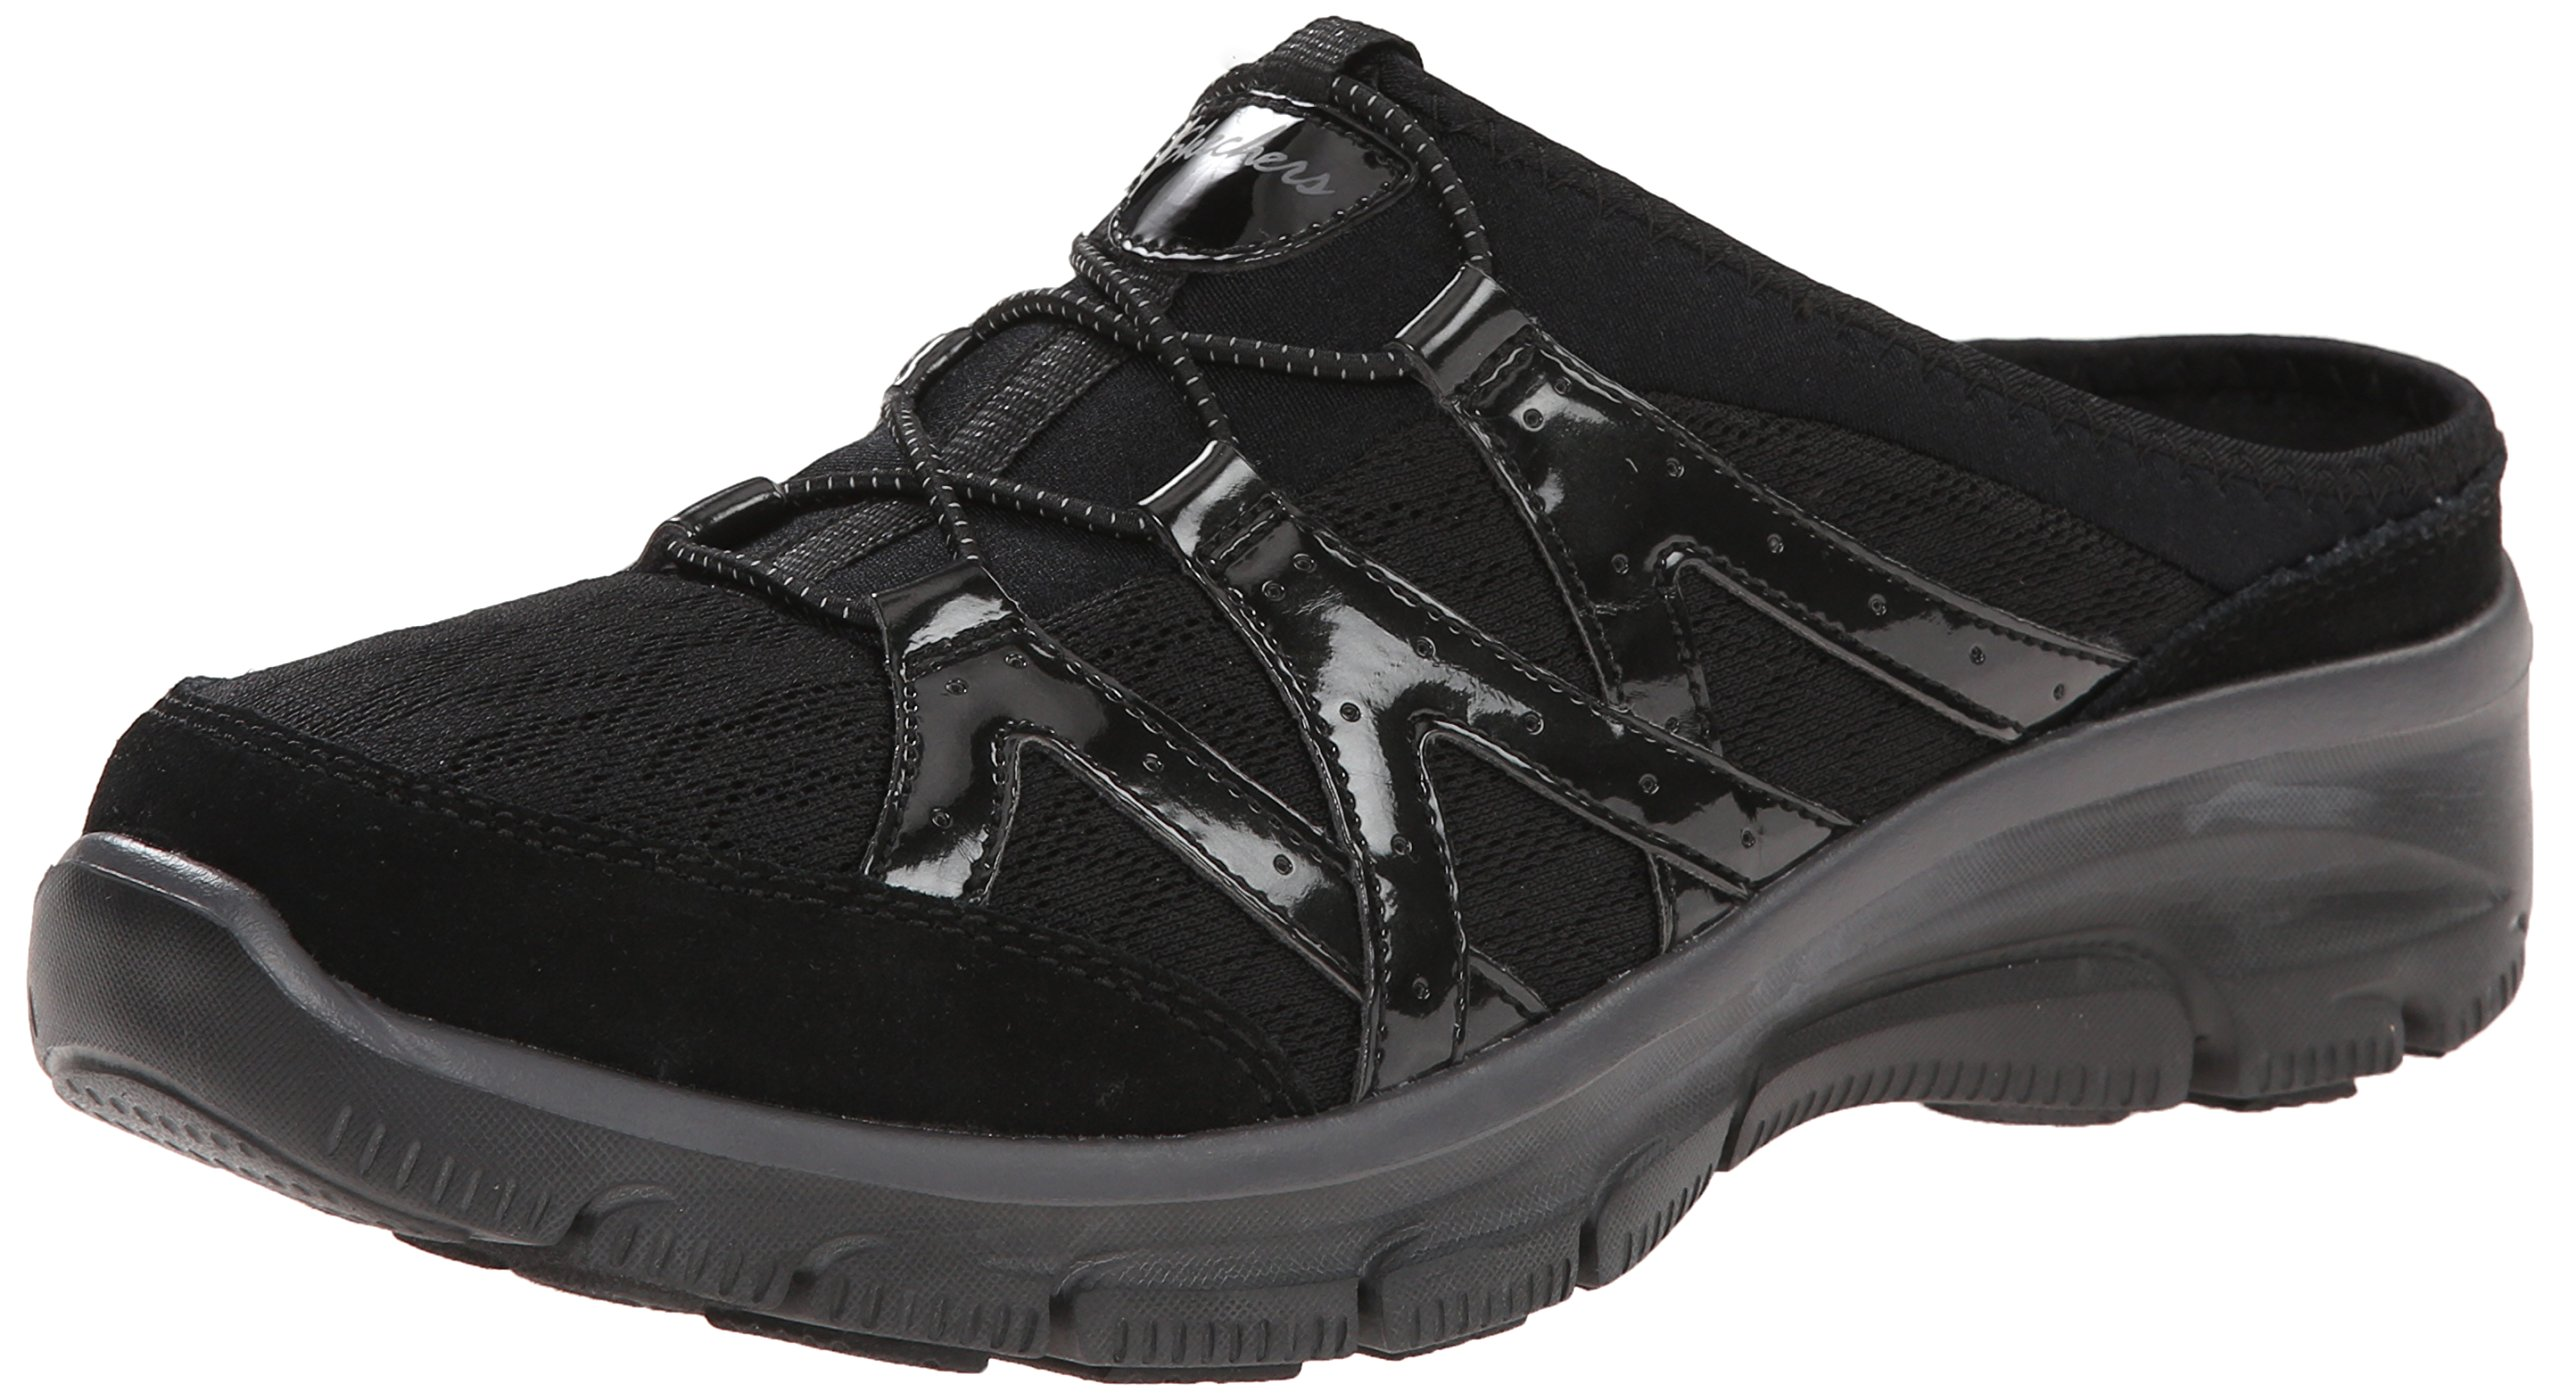 Skechers Women's Easy Going Repute Mule,Black,6.5 M US